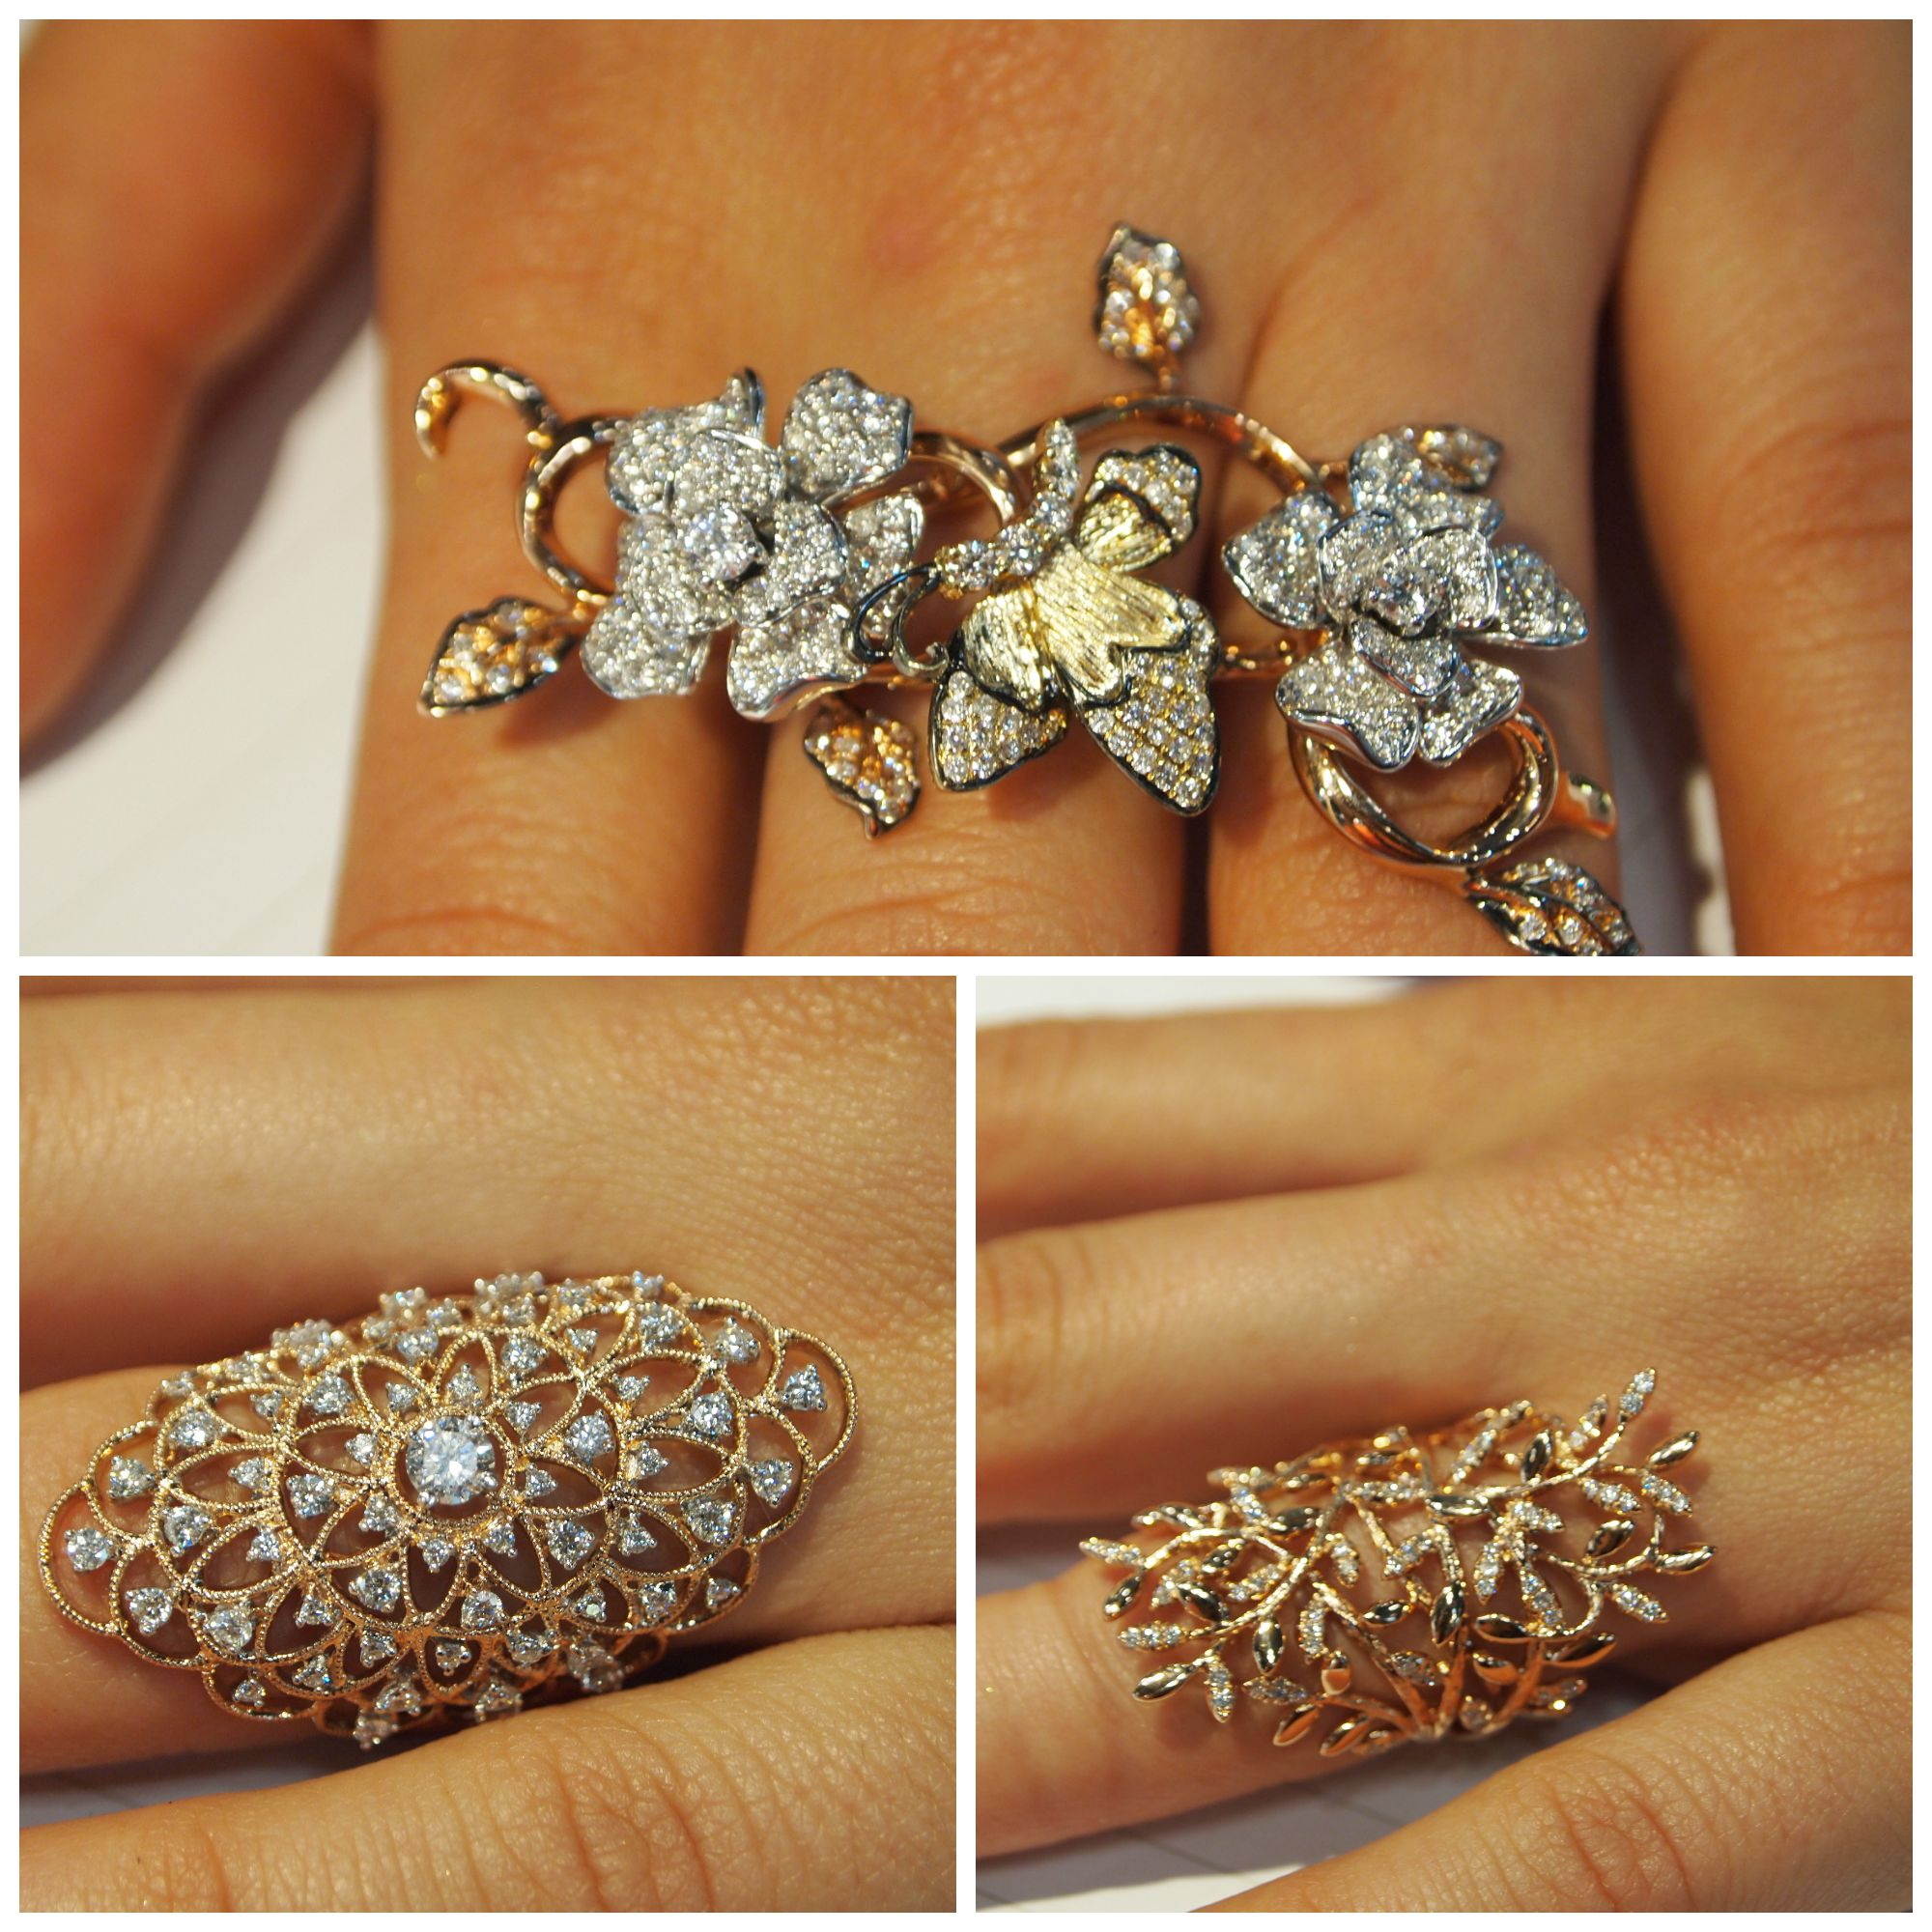 Collage of KGM beauties, all in 18k yellow gold and diamonds.